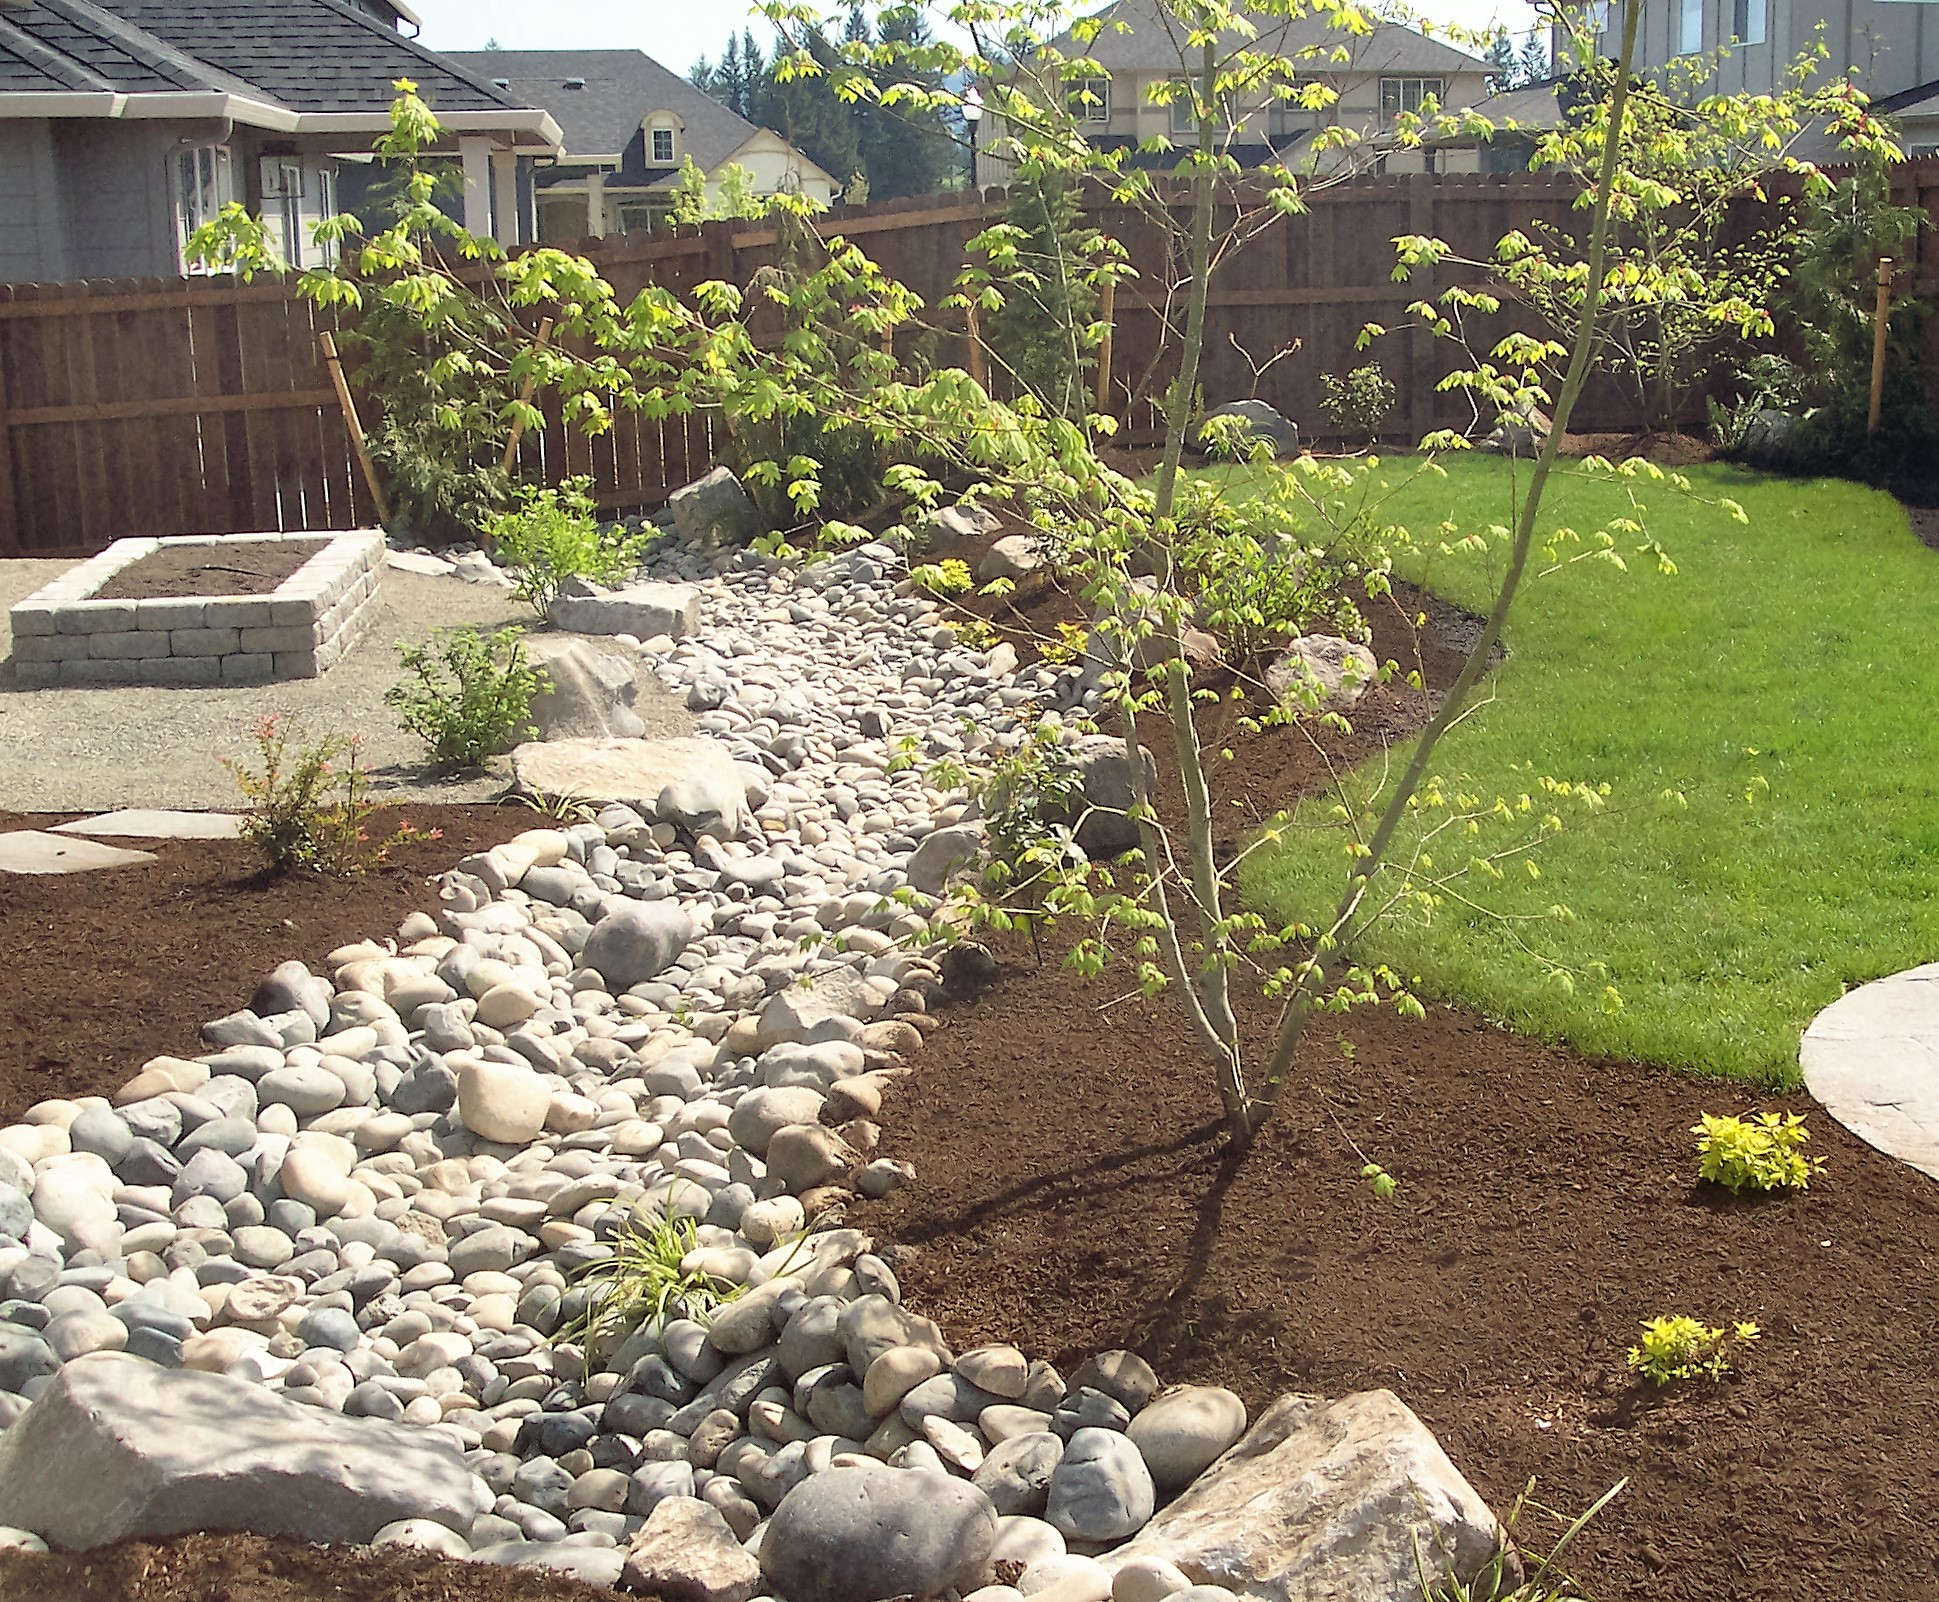 Designing A Garden Solving Water Problems With Dry Creek Beds